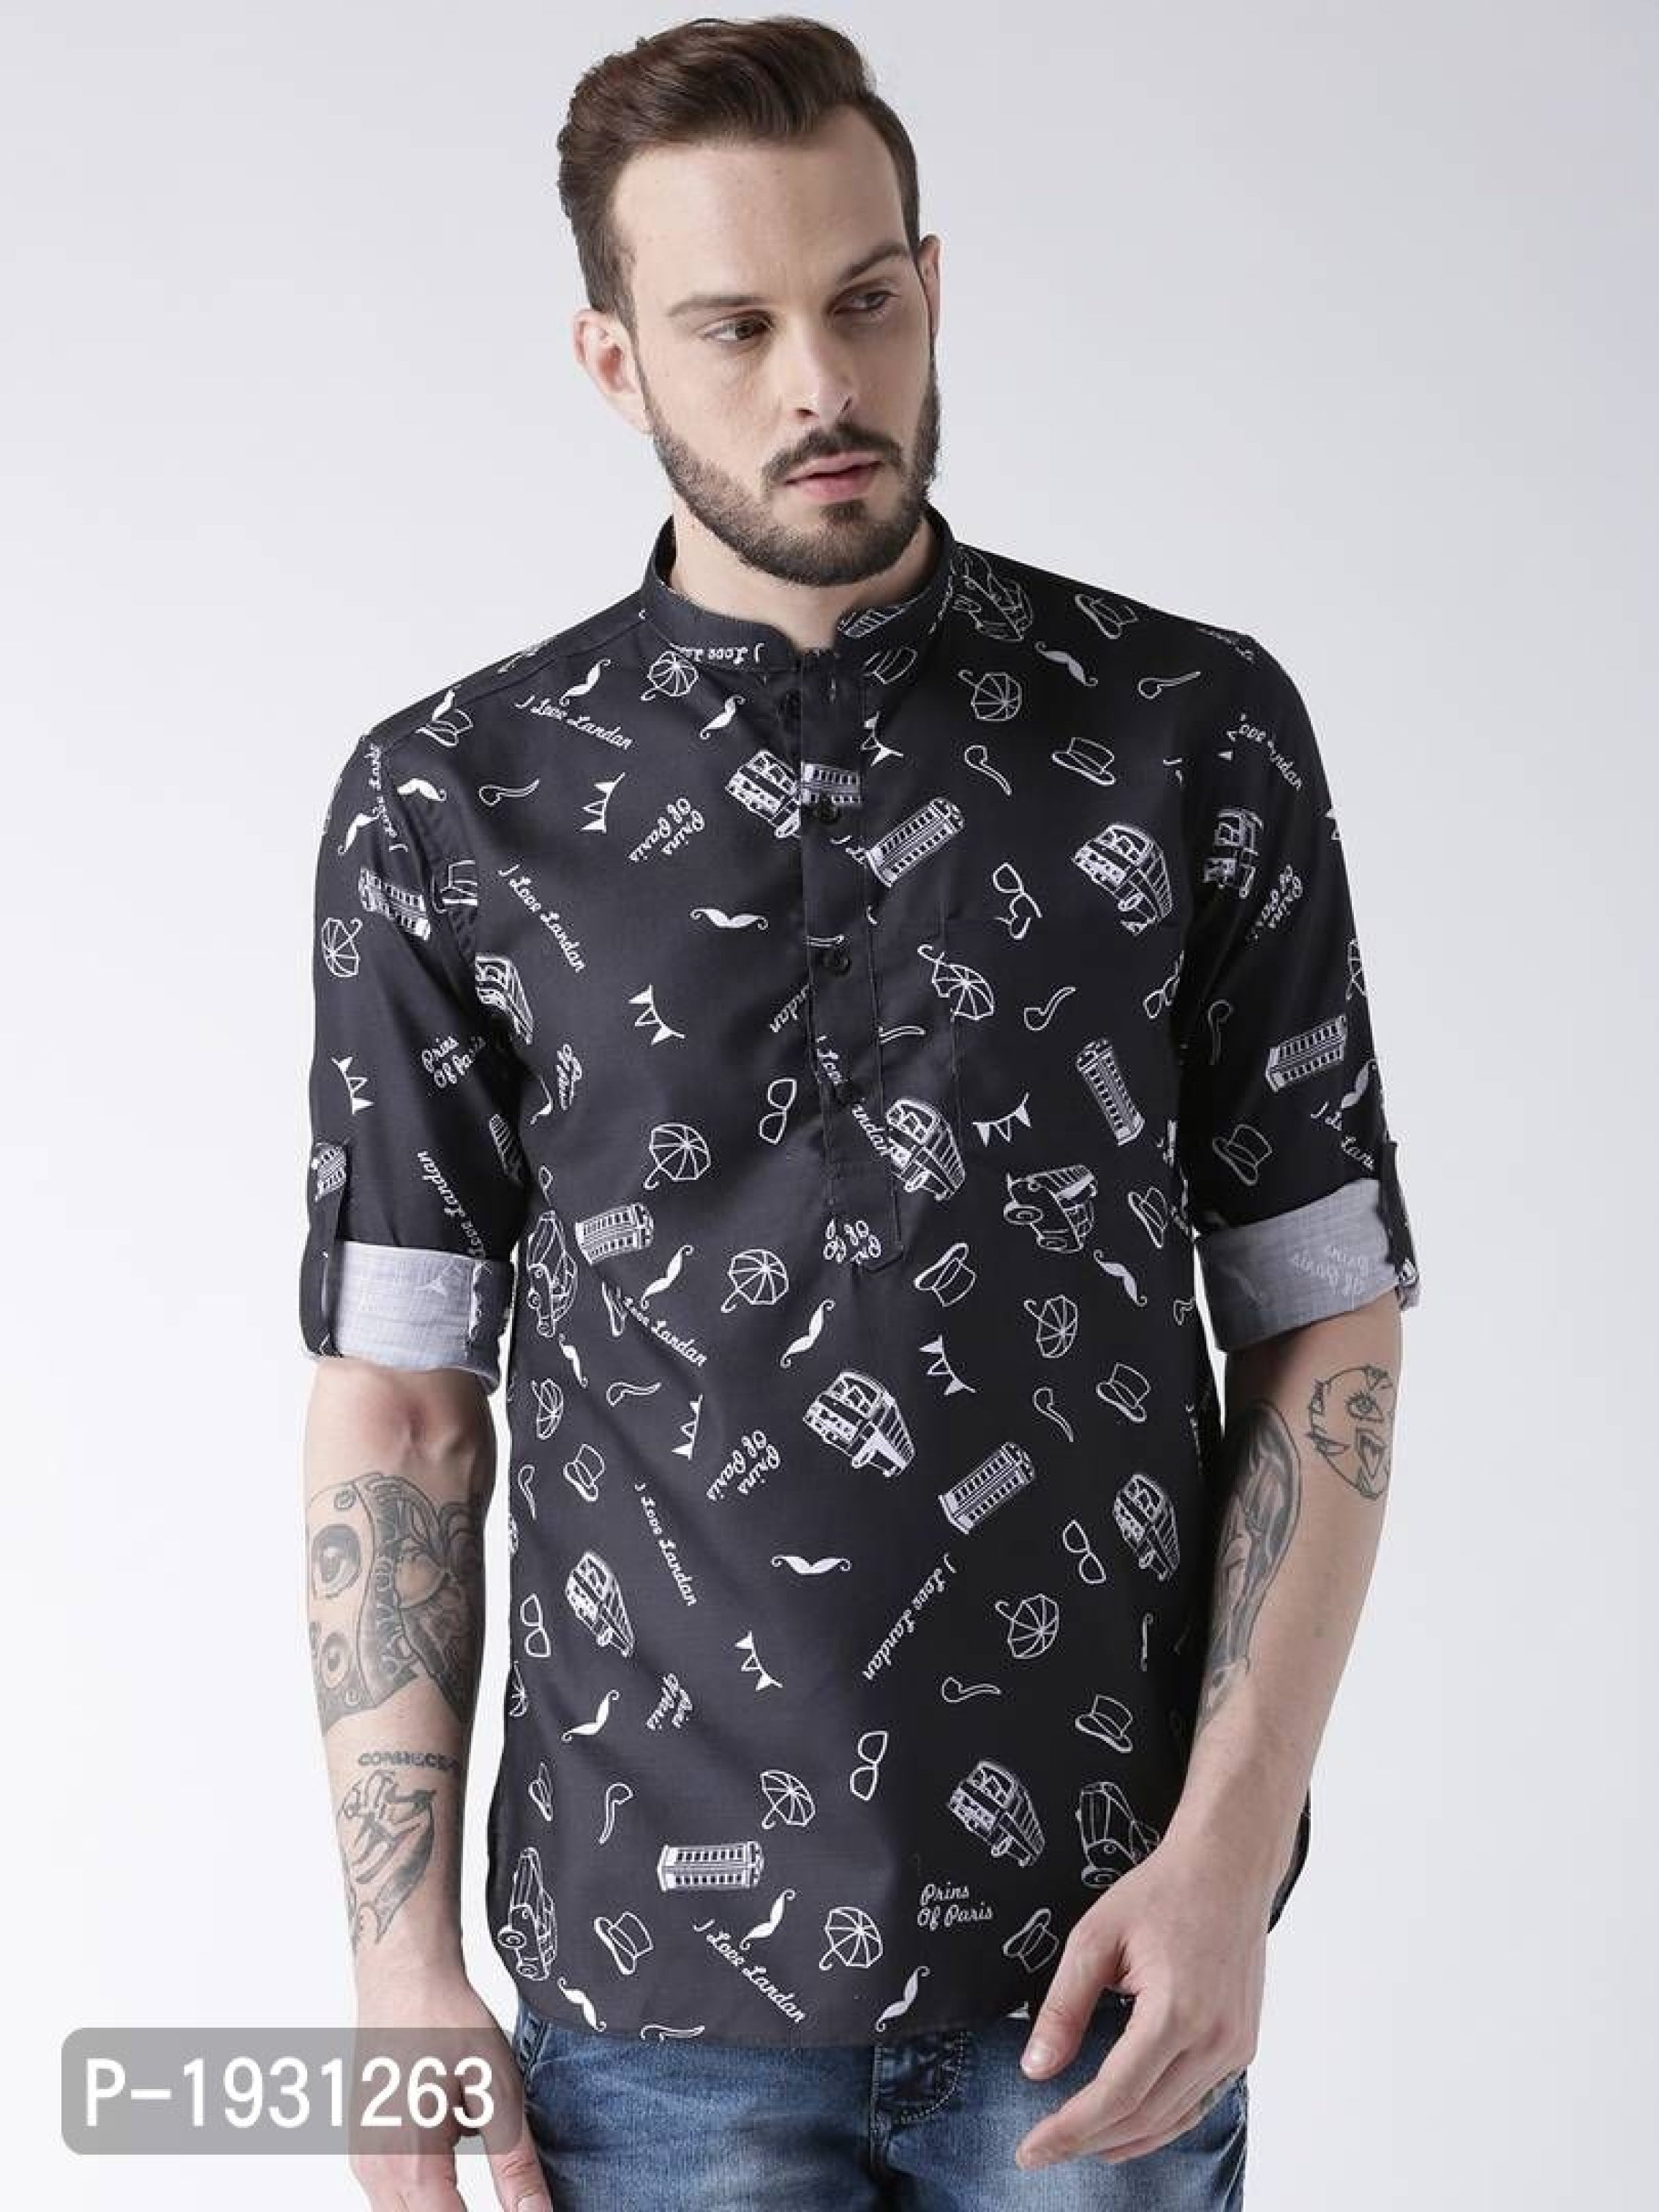 Jet Black Graffiti Print Regular Fit Shirt